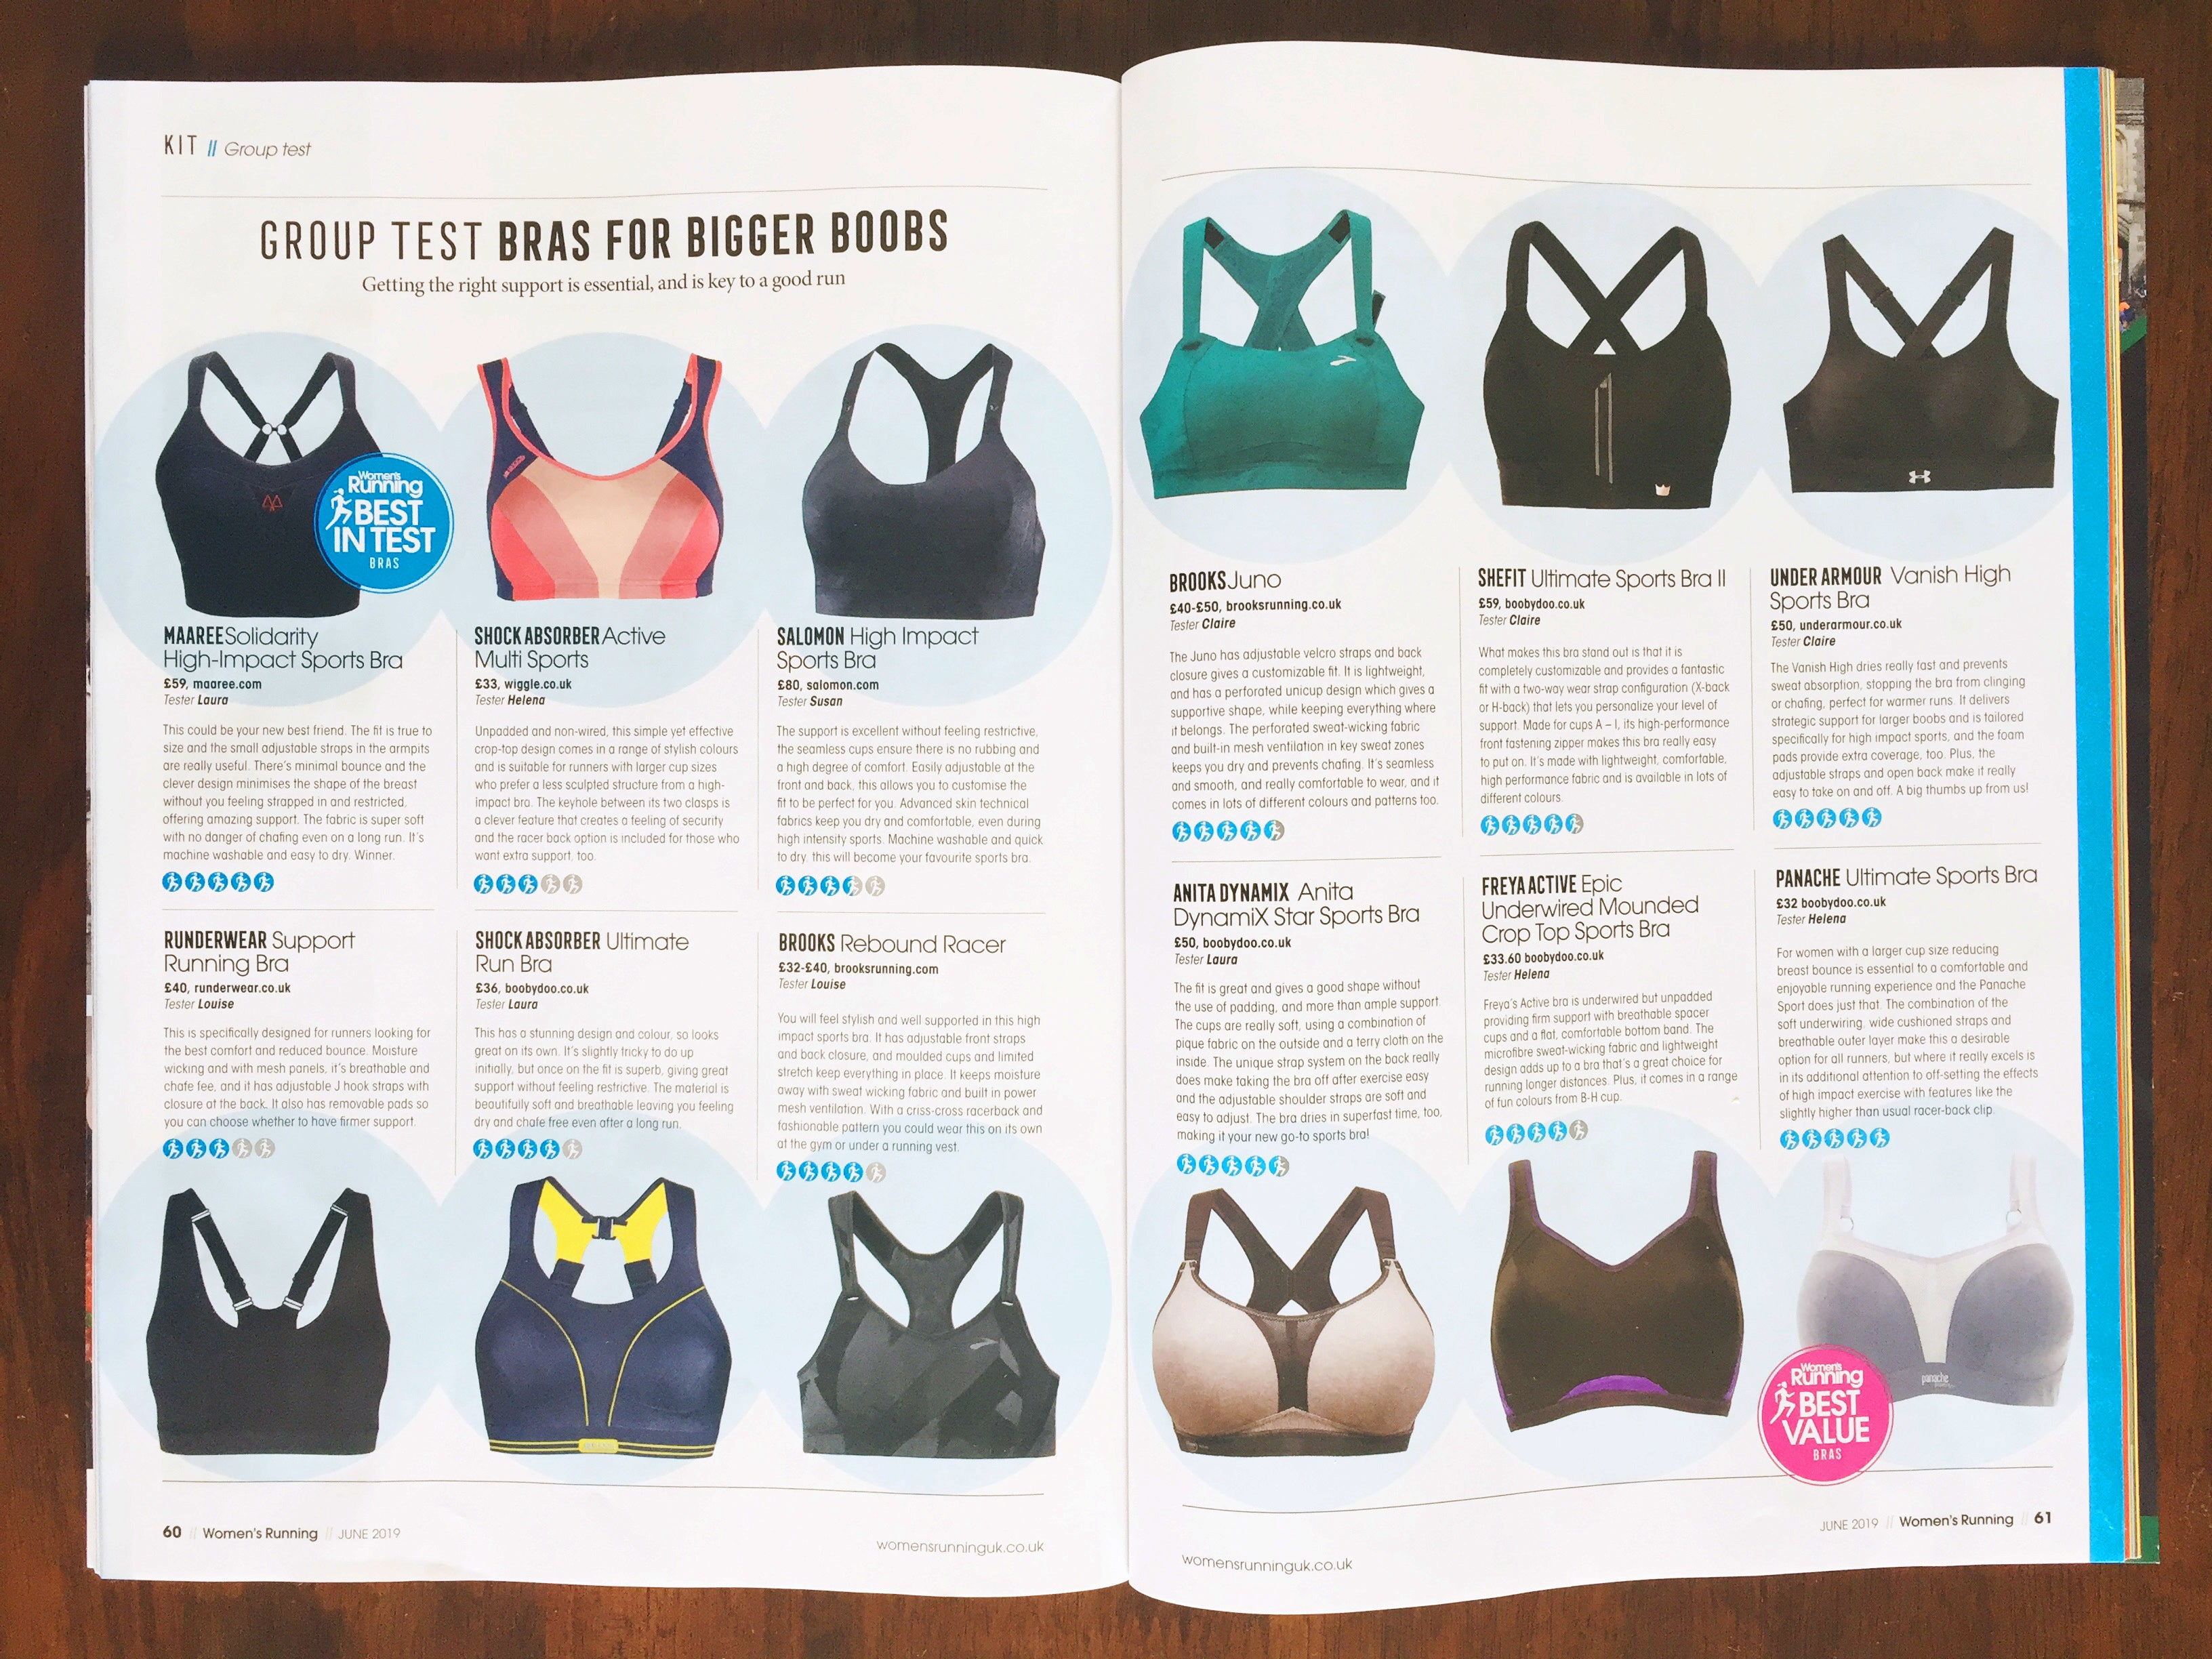 Women's Running Magazine Sports Bra review for big boobs